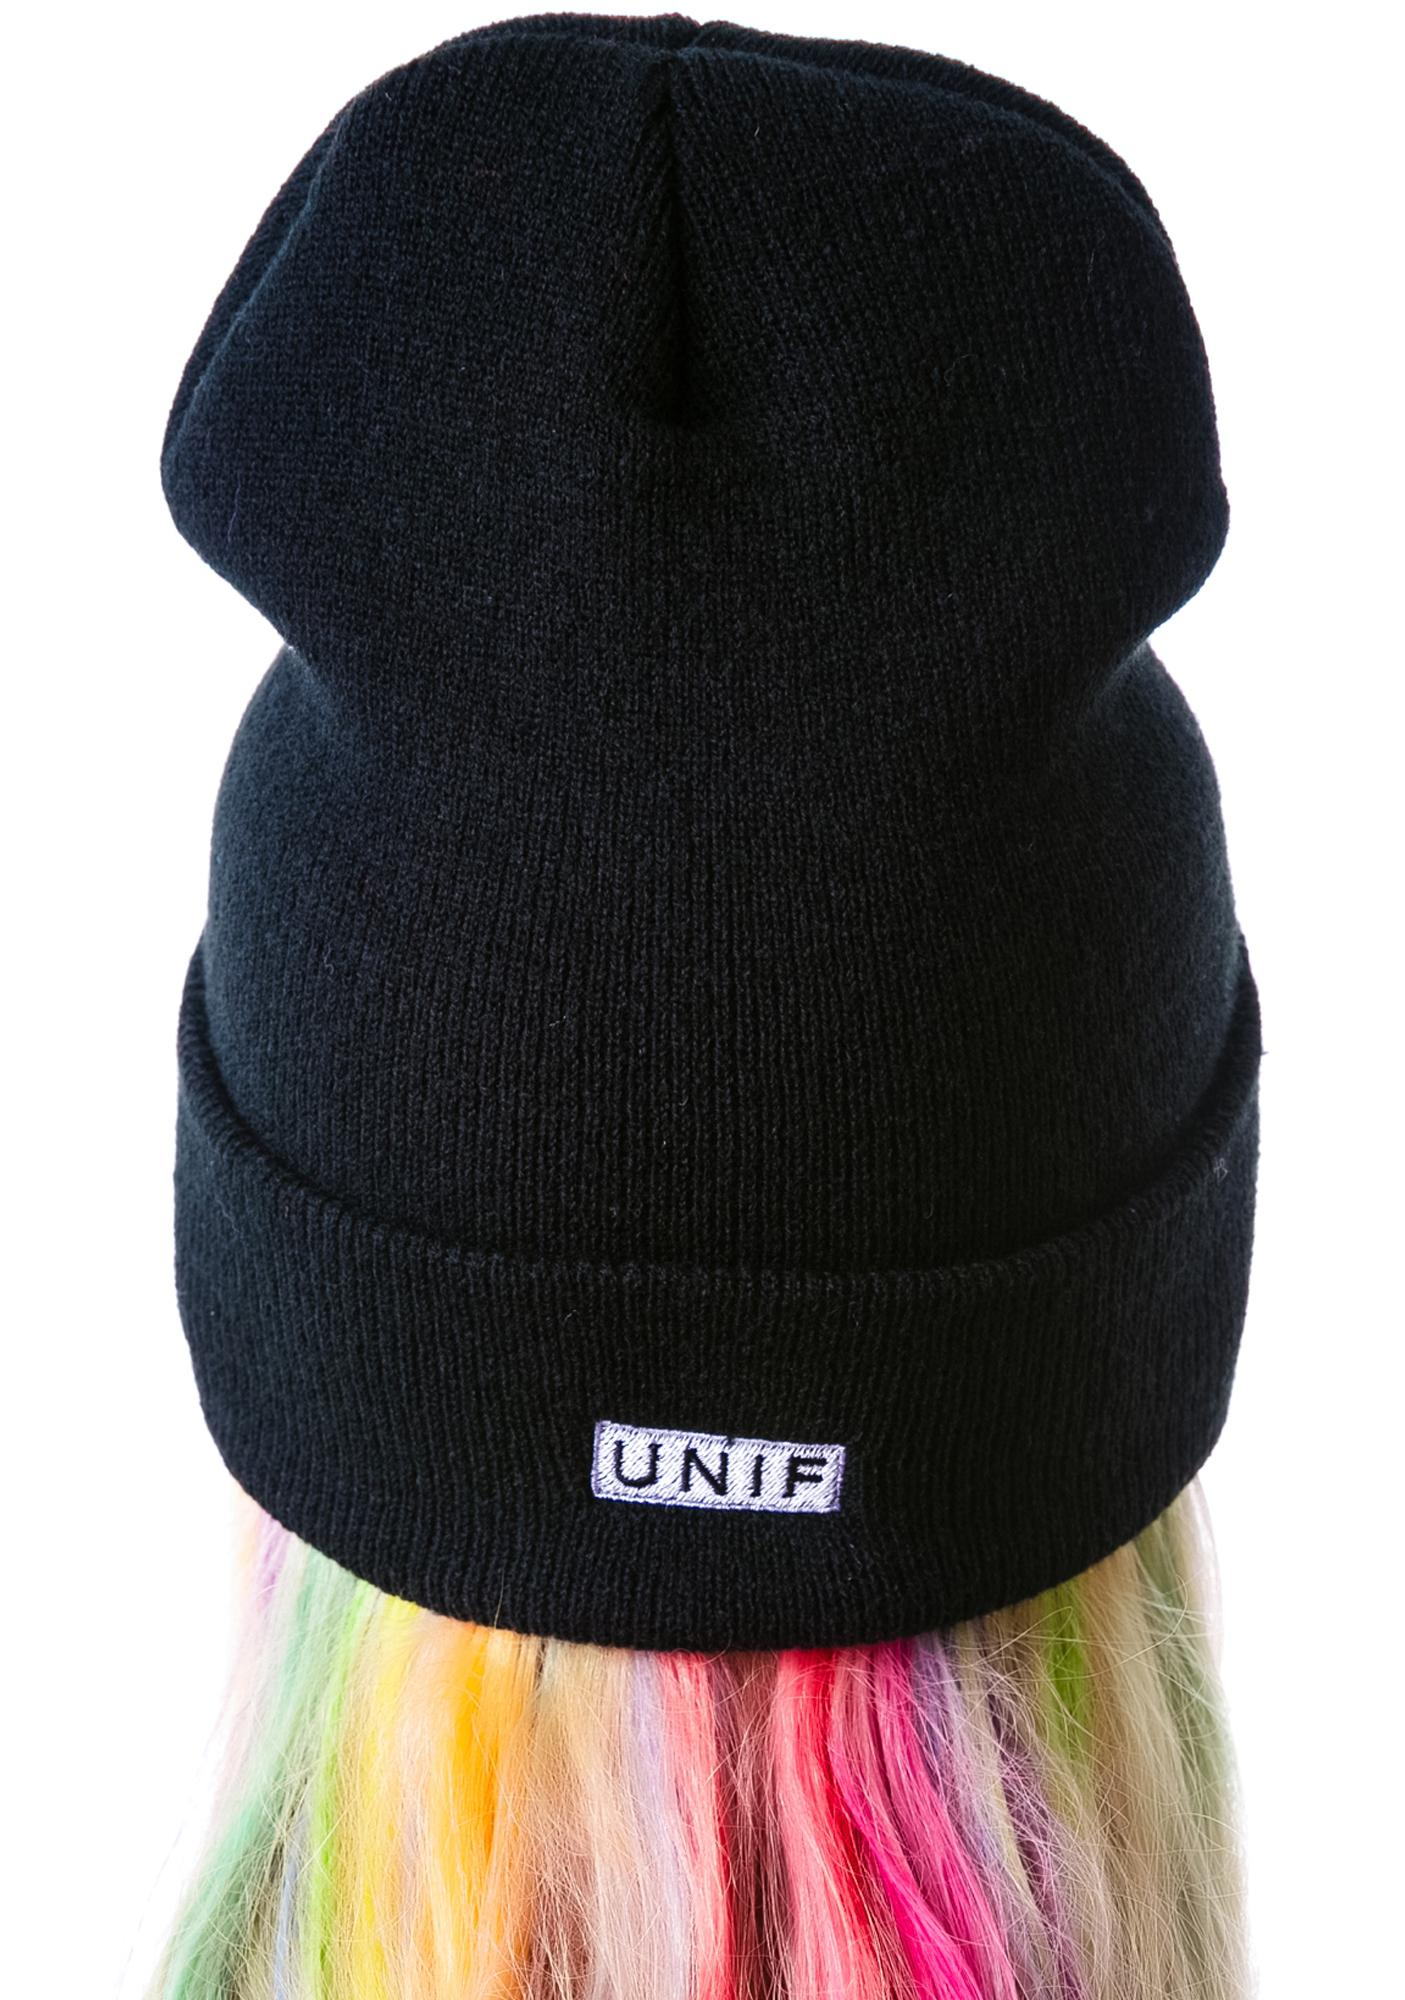 UNIF No Luck Club Beanie